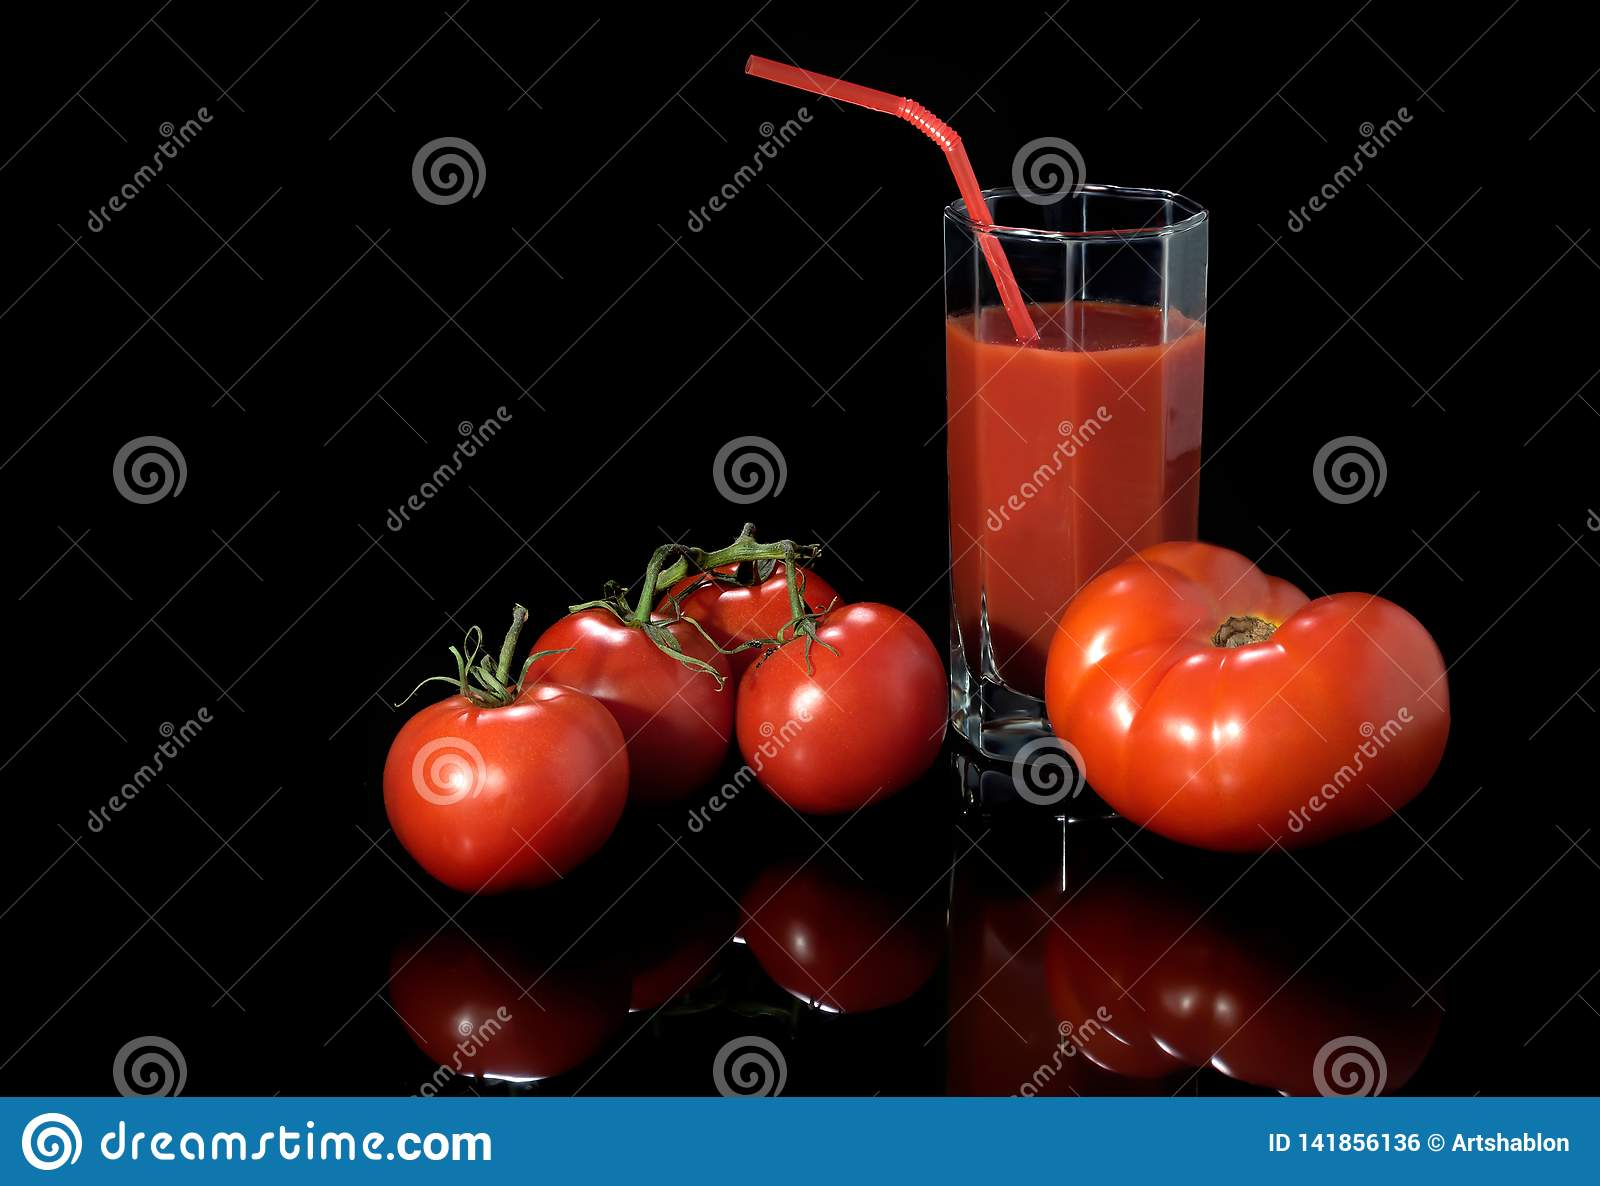 Juicy red tomatoes are isolated on a black background